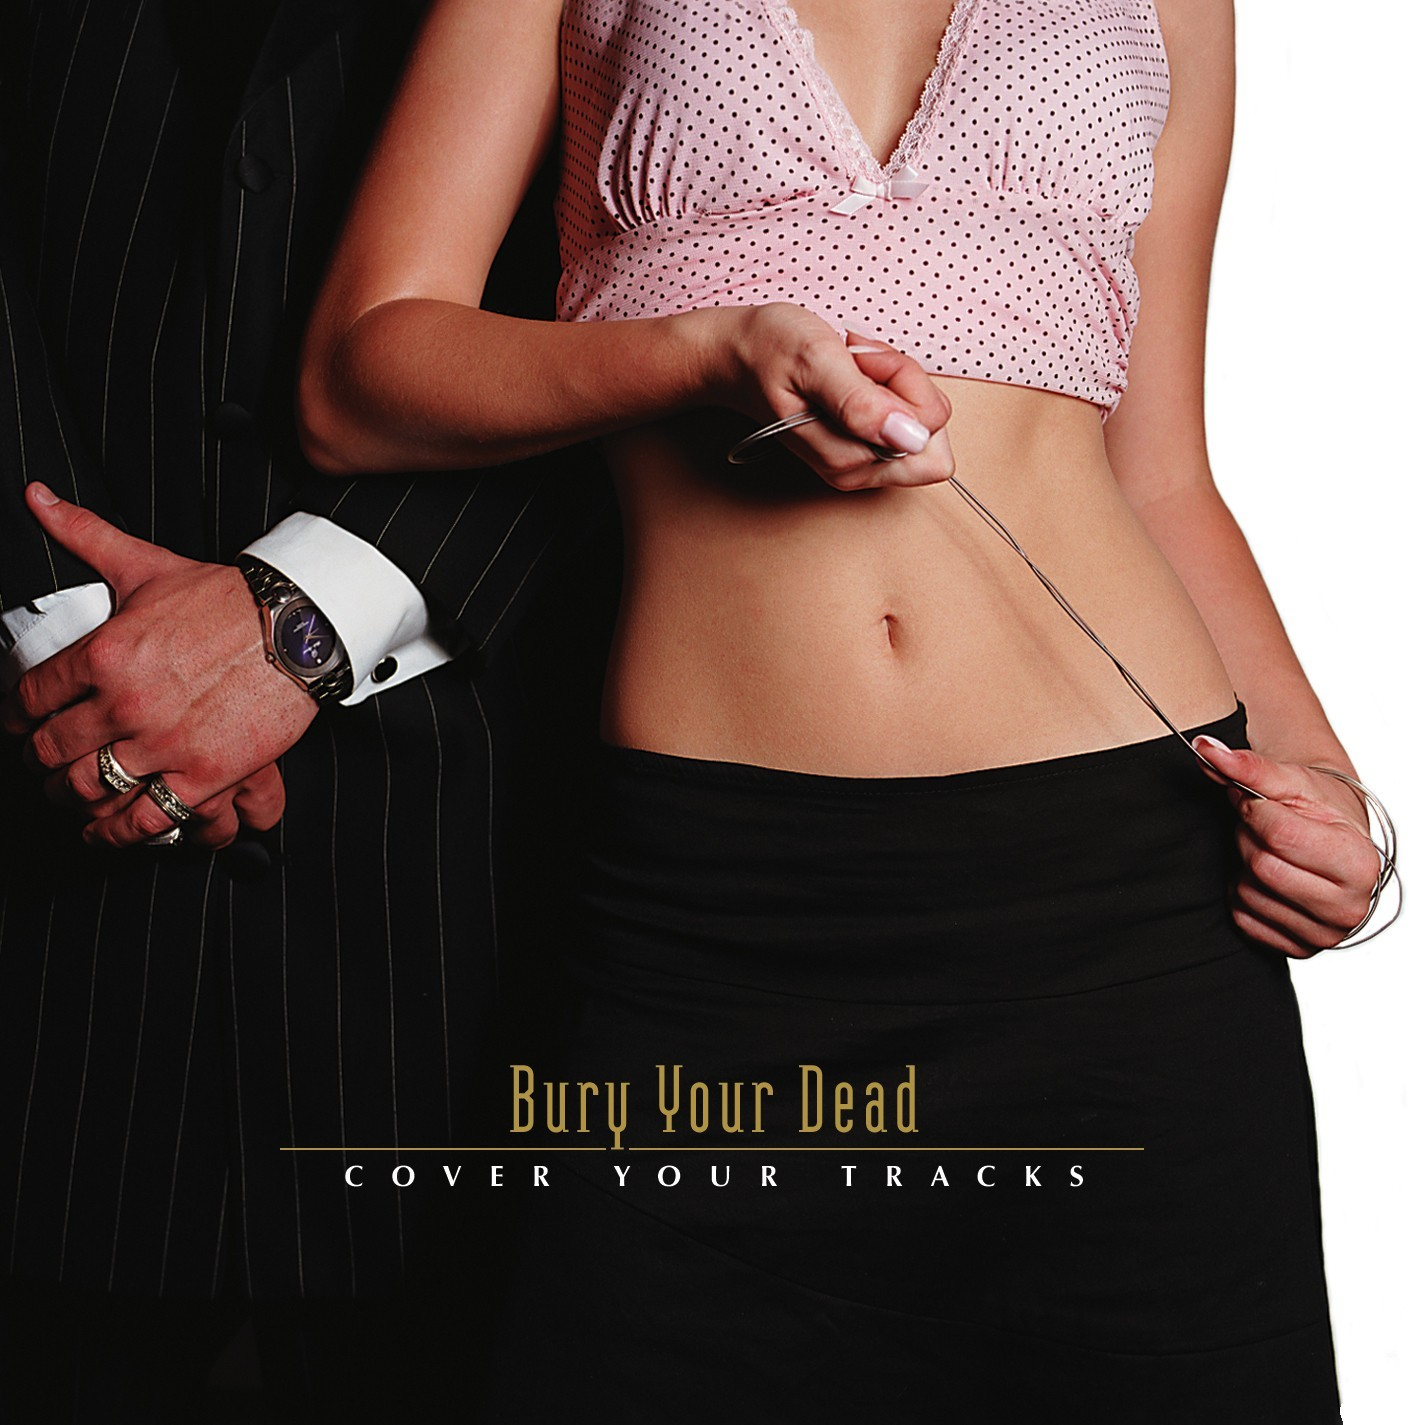 pornography album covers Bury HD Wallpaper